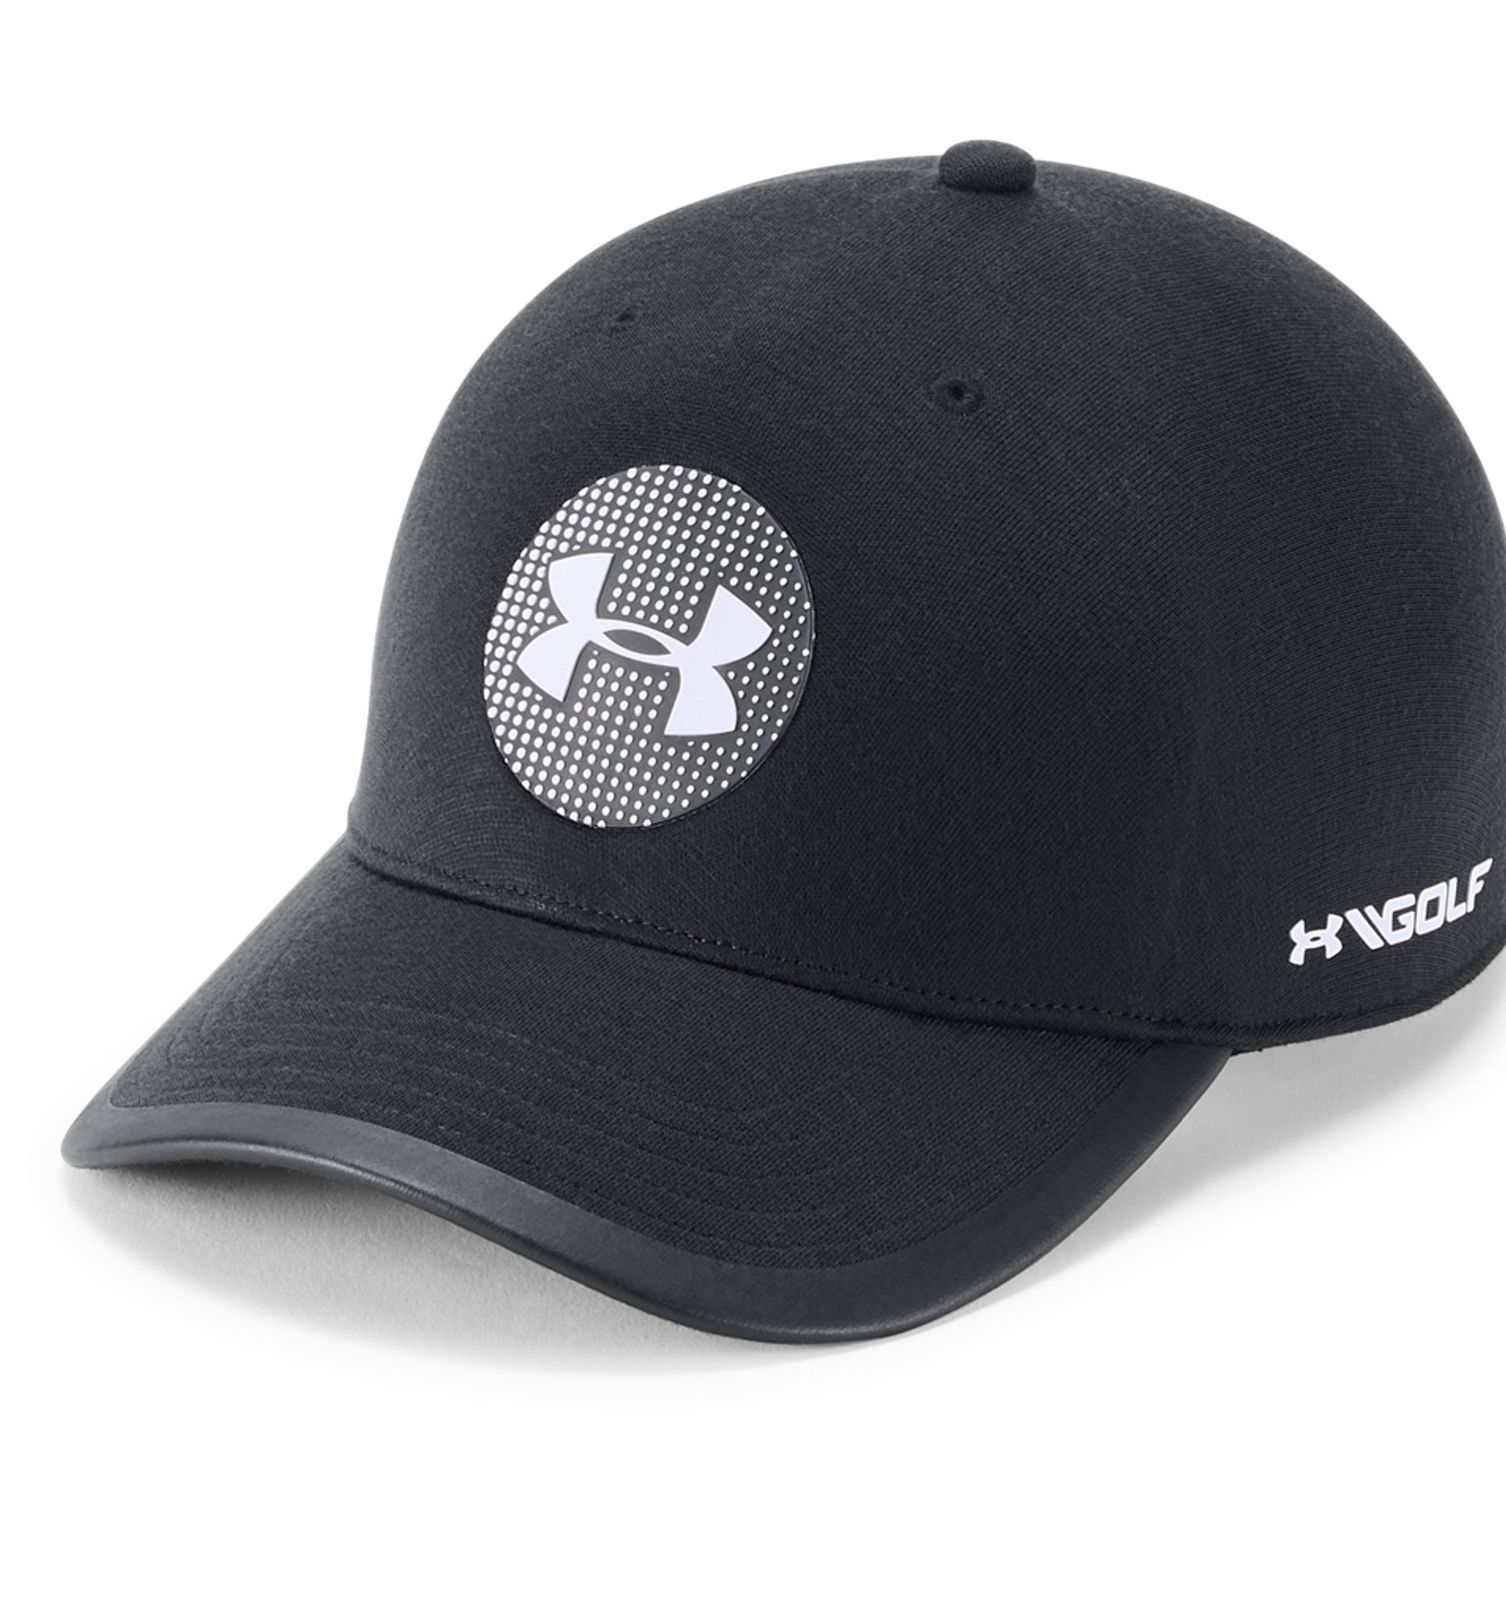 Men's Elevated Jordan Spieth Tour Cap